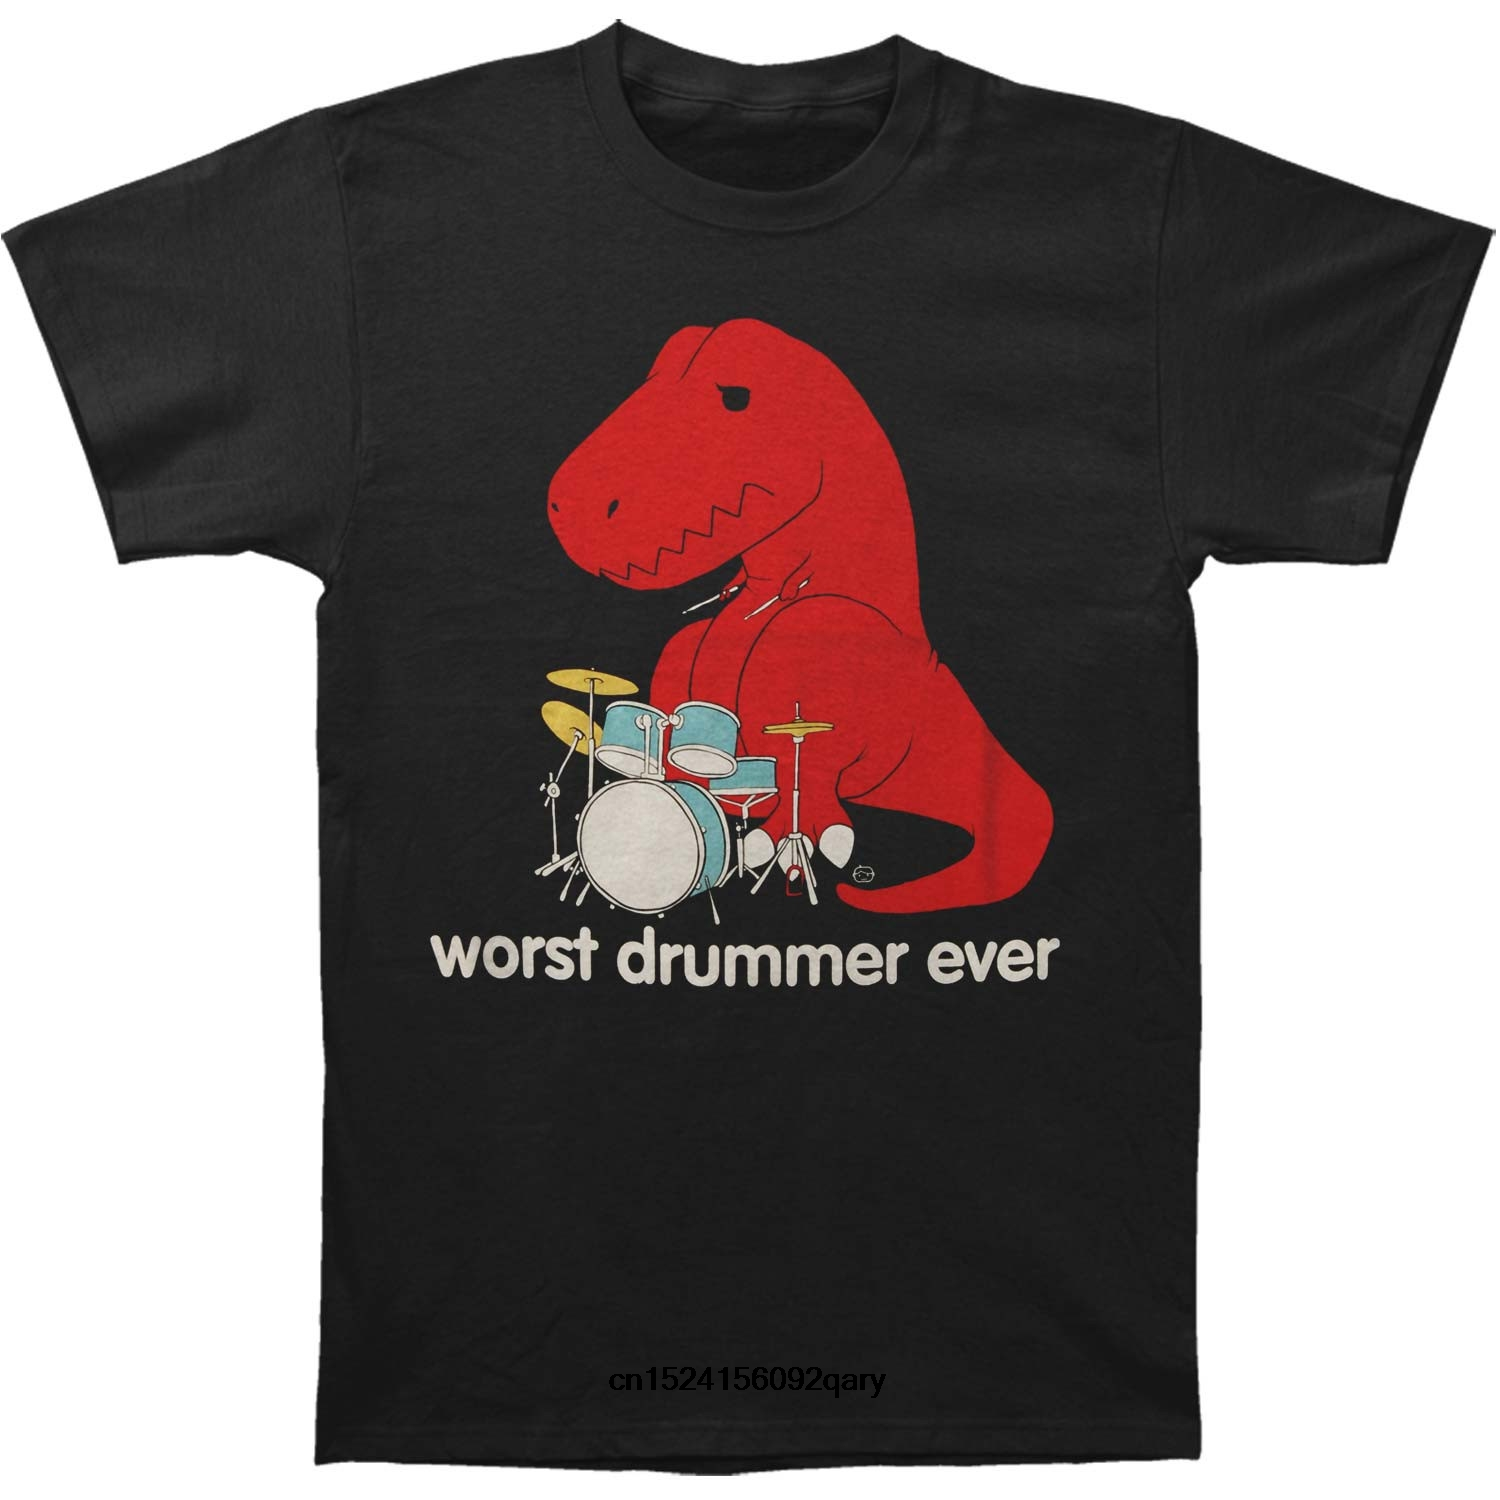 Men Funny T Shirt Women Cool tshirt Humor Worst Drummer Ever T-shirt Short Sleeve Tee Shirt Free Shipping cheap wholesale image